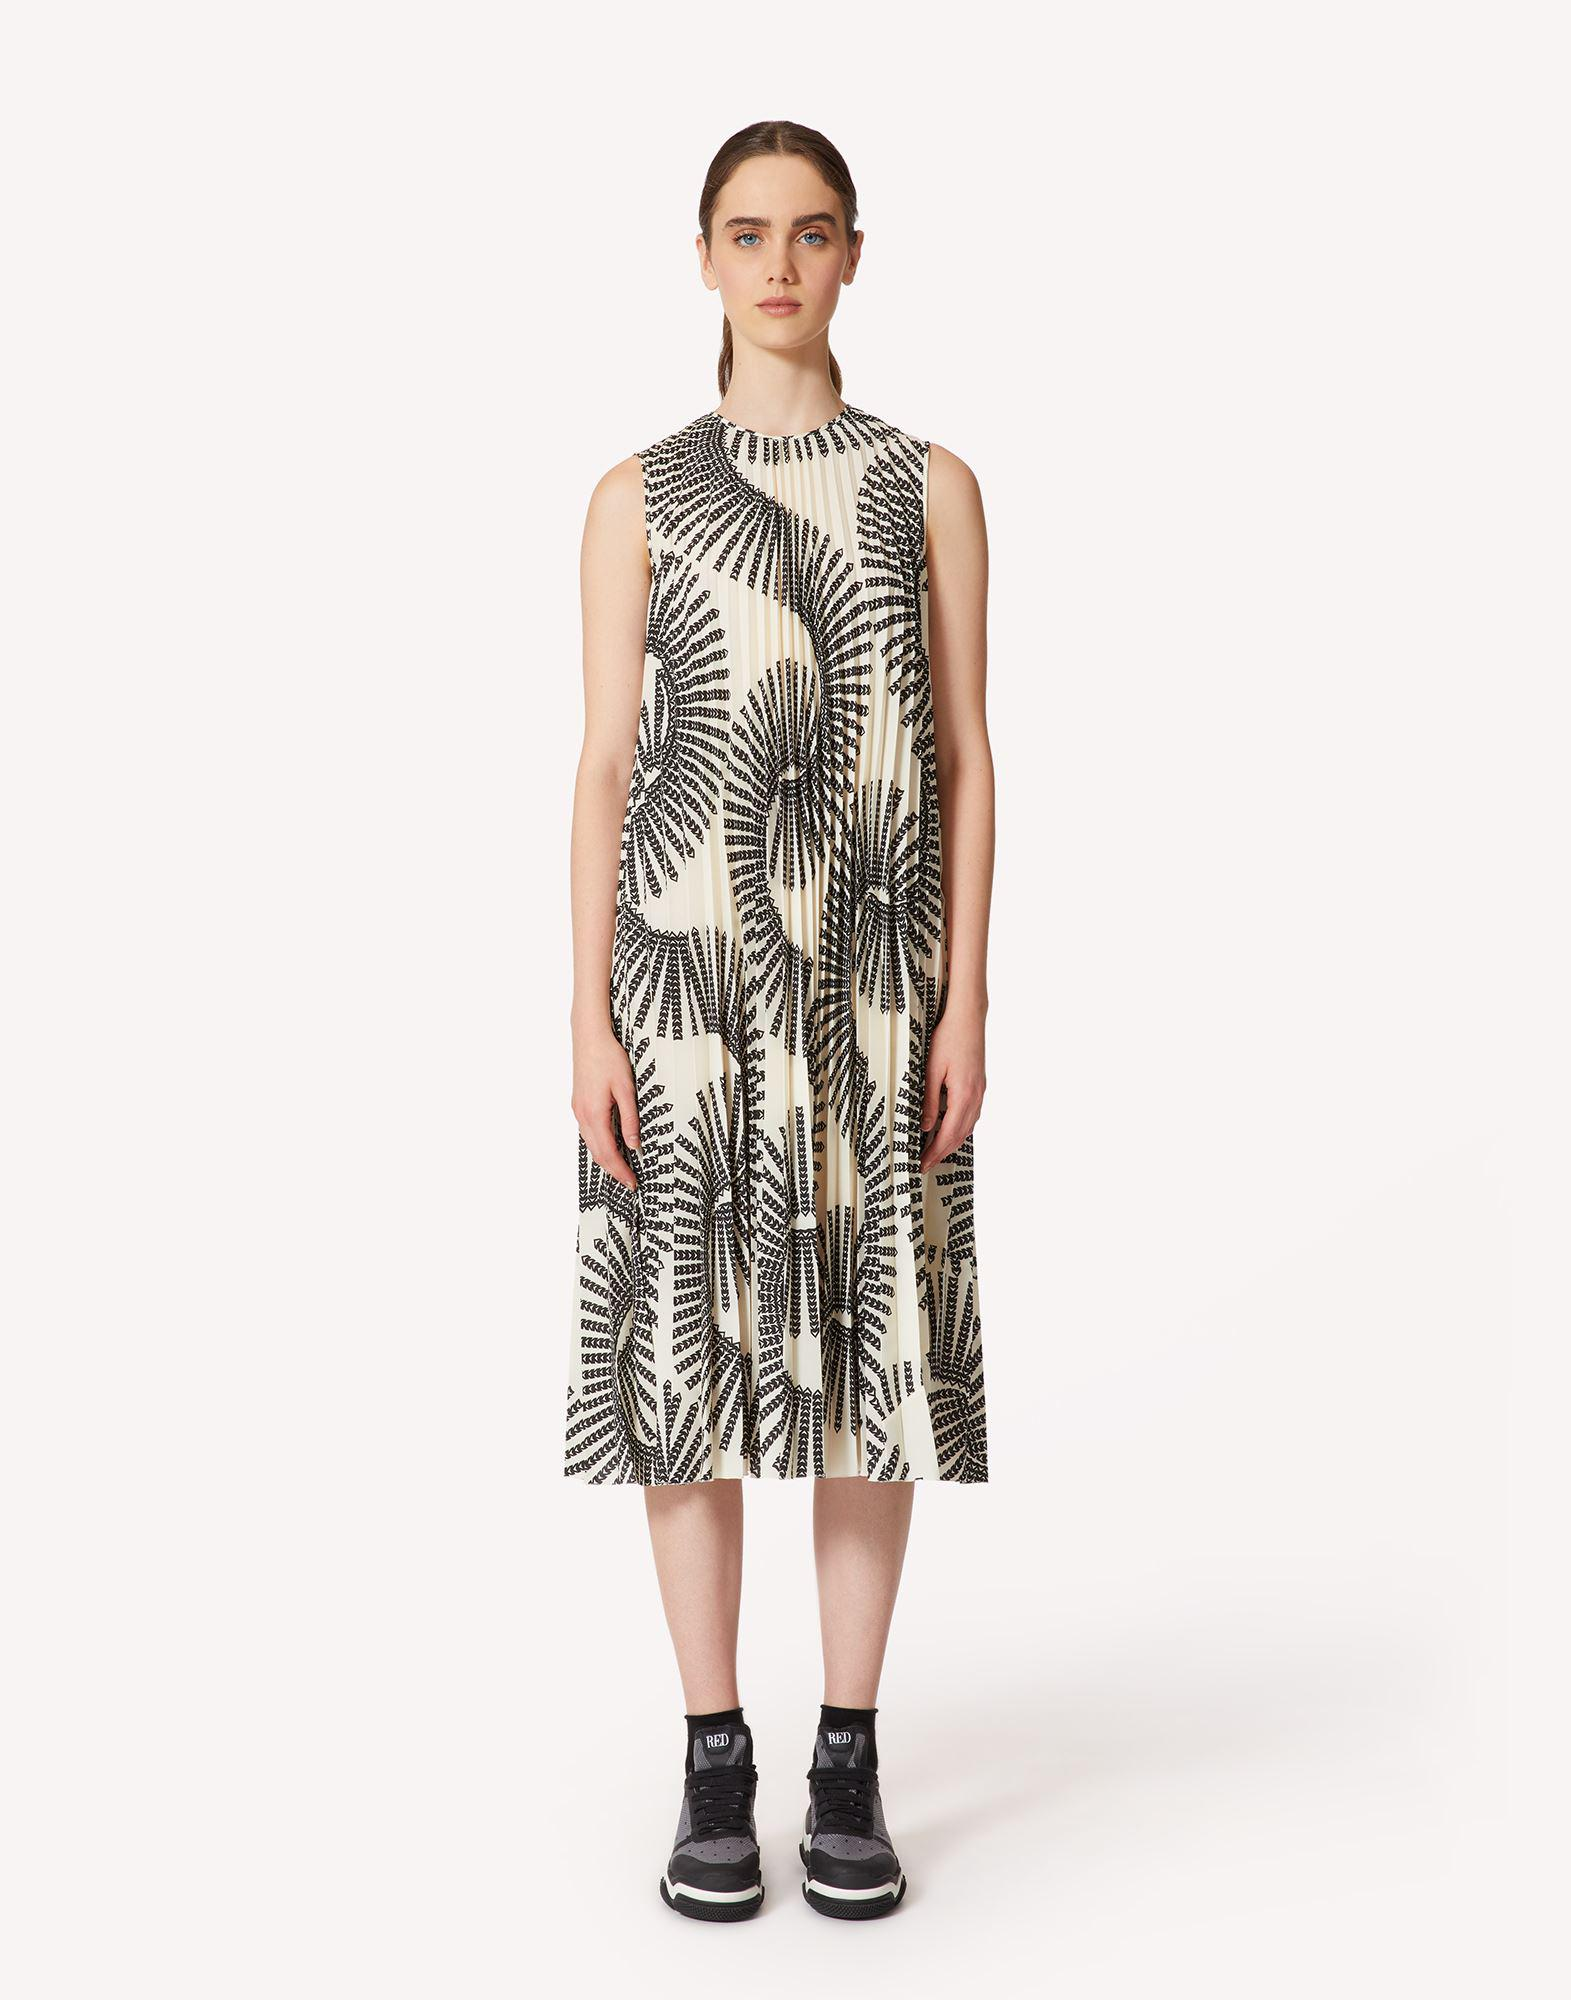 CHELSEA IN BLOOM LIMITED EDITION - PRINTED PLEATED DRESS